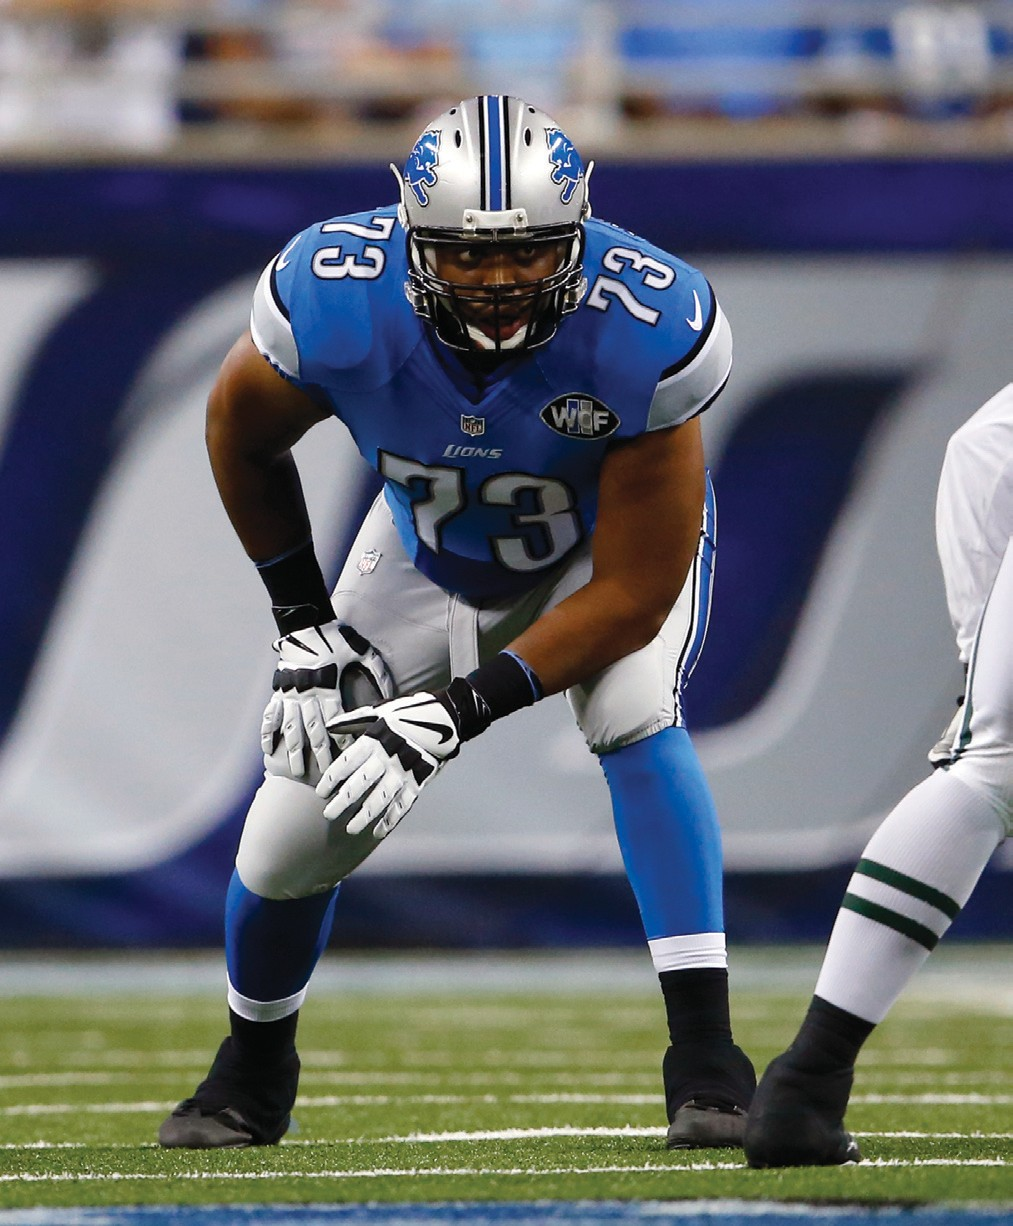 Detroit Lions tackle Michael Williams (73) lines up on the line of scrimmage against the New York Jets during an NFL preseason football game Aug. 13 in Detroit.